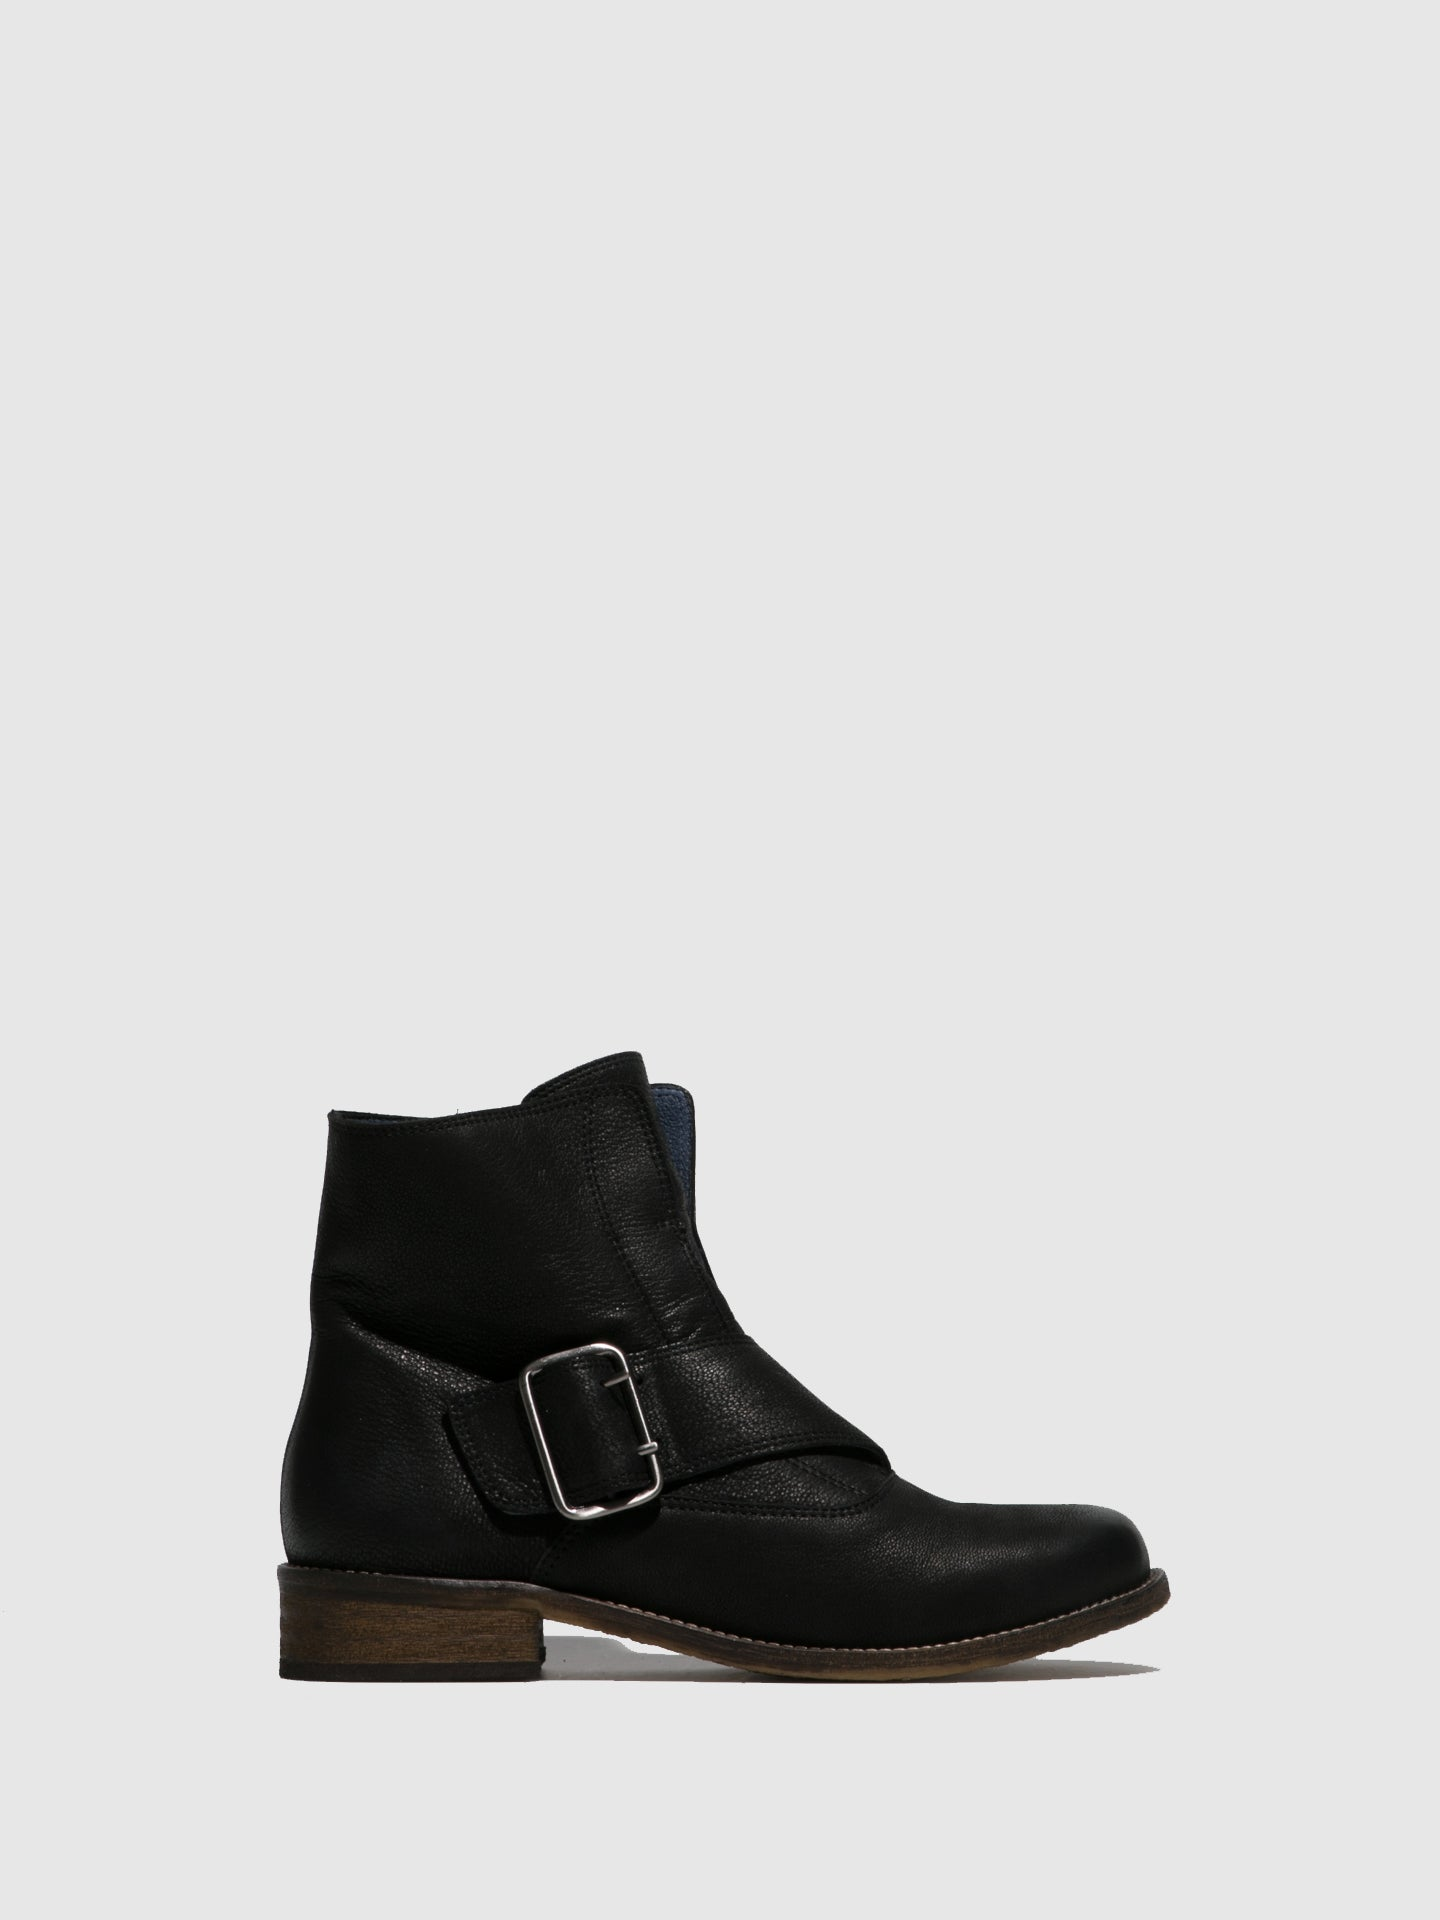 PintodiBlu Black Buckle Ankle Boots